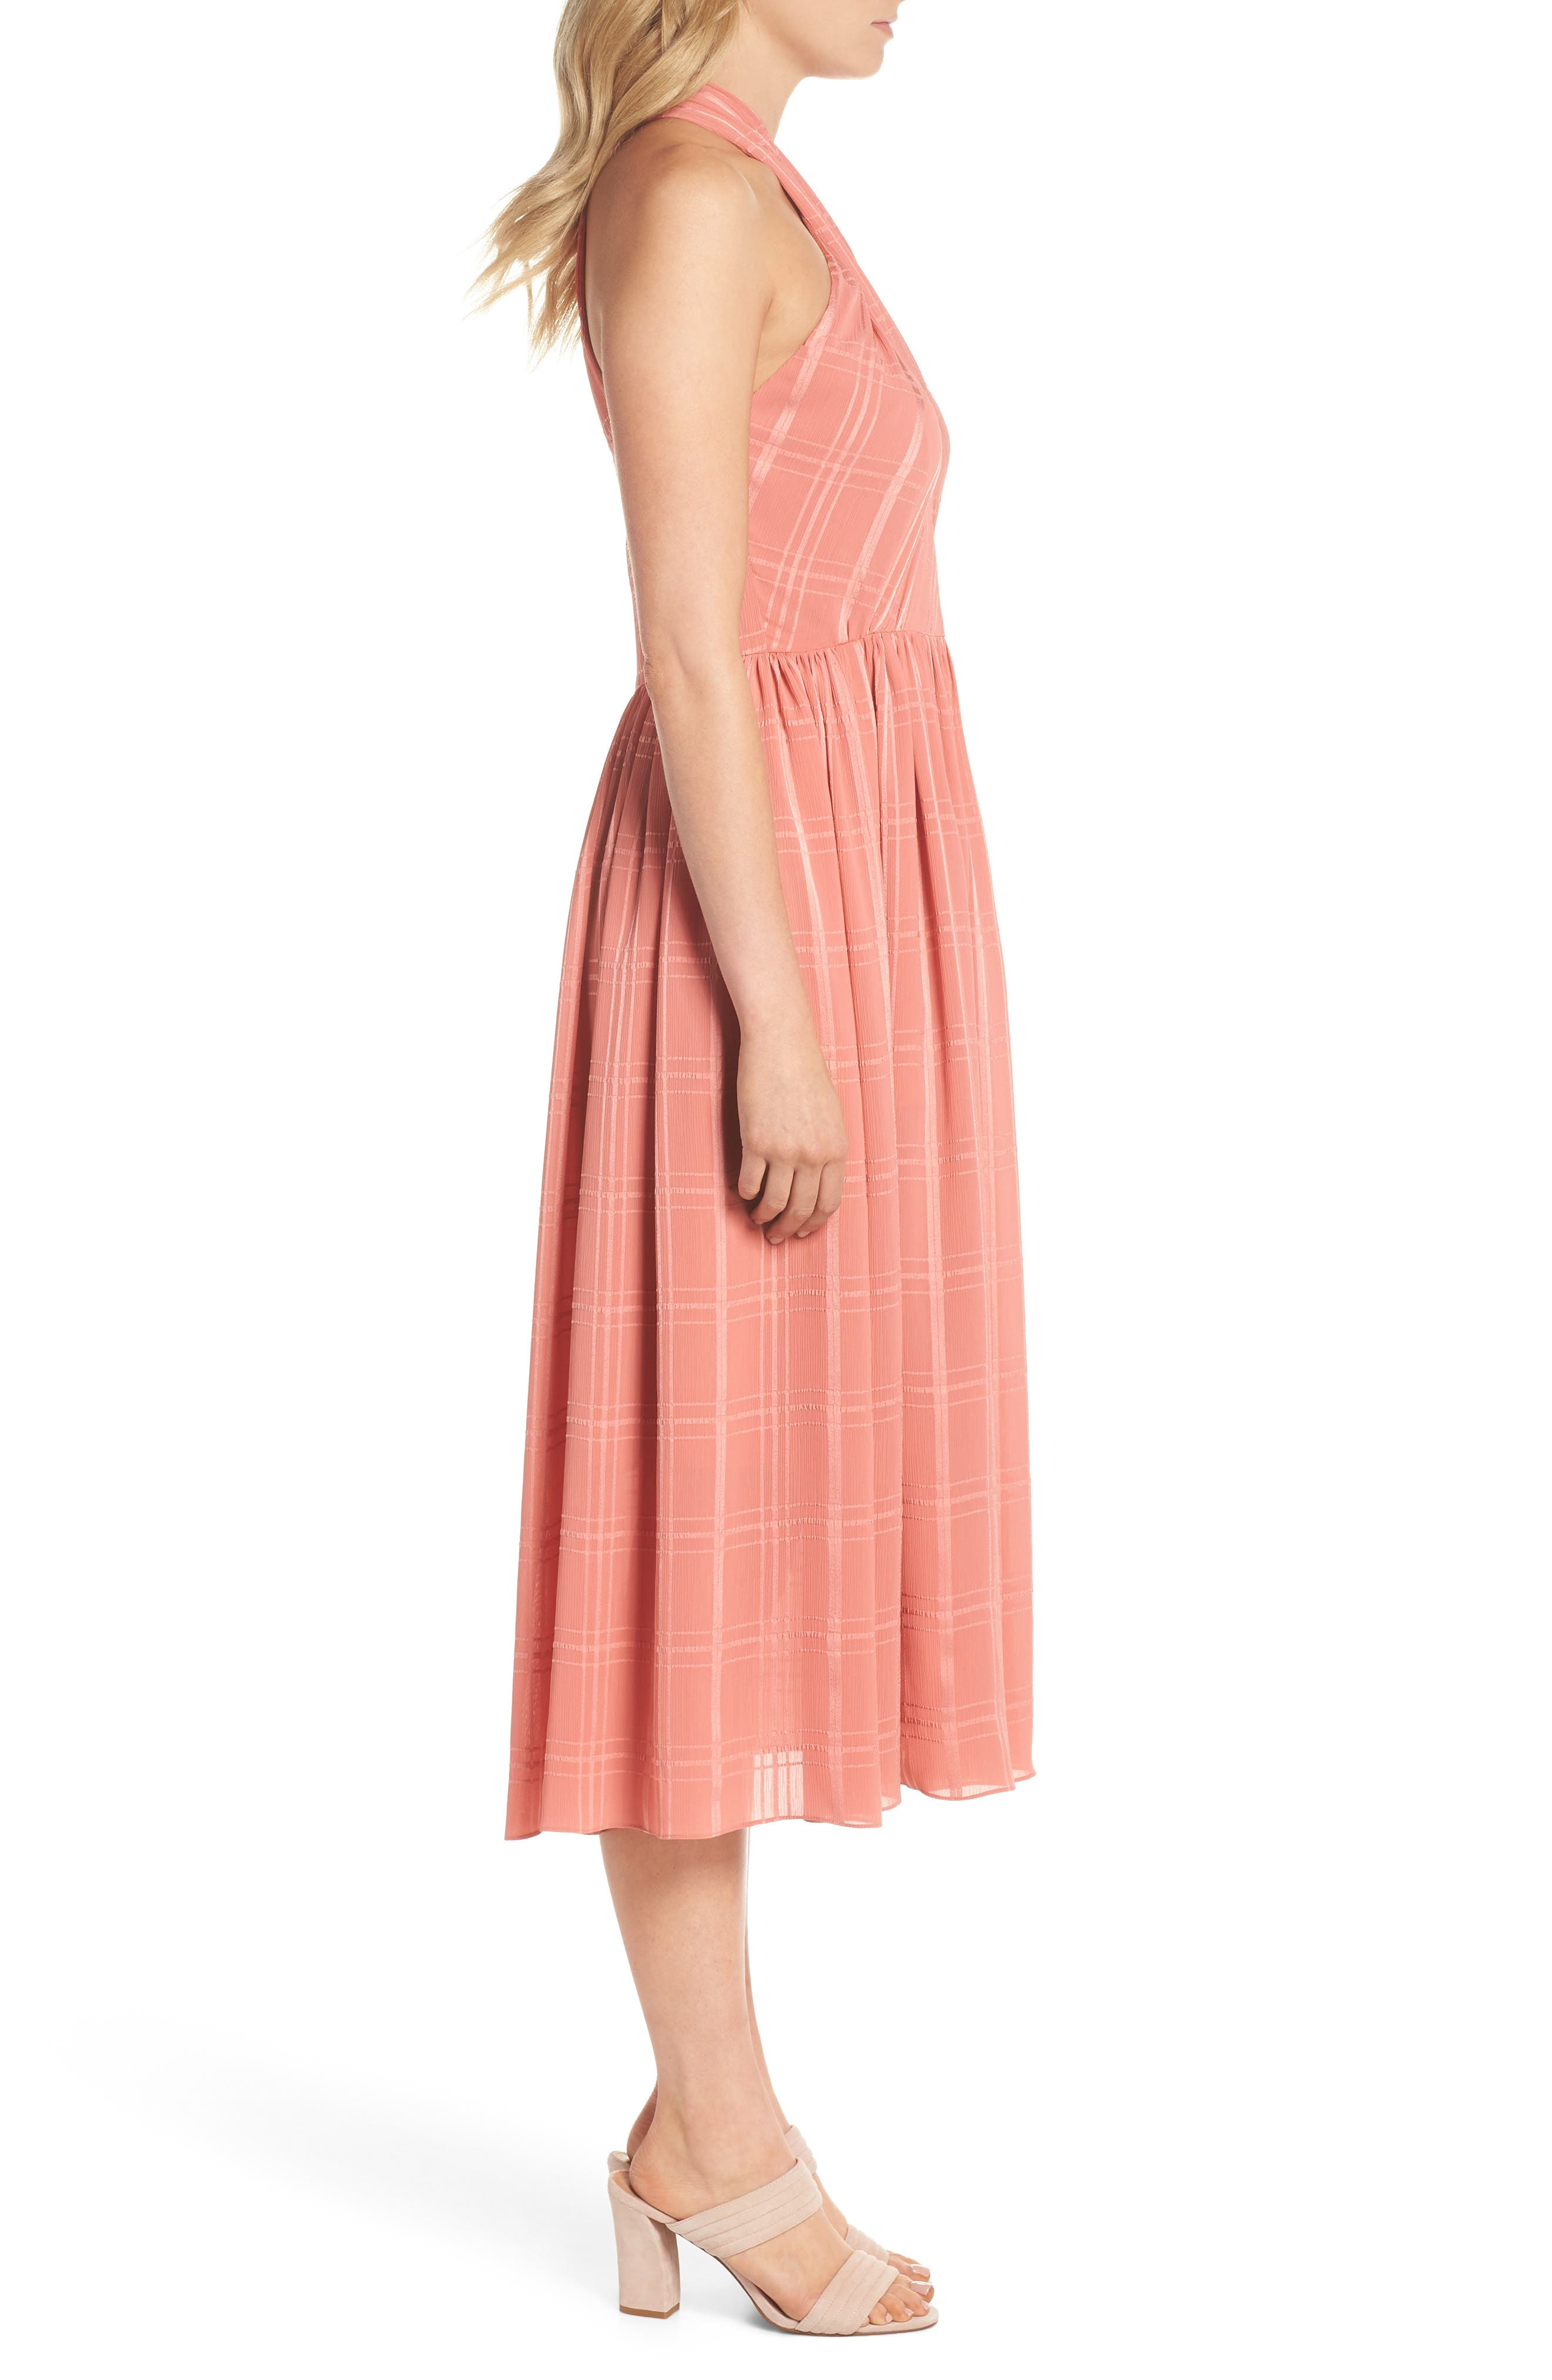 Mia Twist Chiffon Midi Dress,                             Alternate thumbnail 3, color,                             681